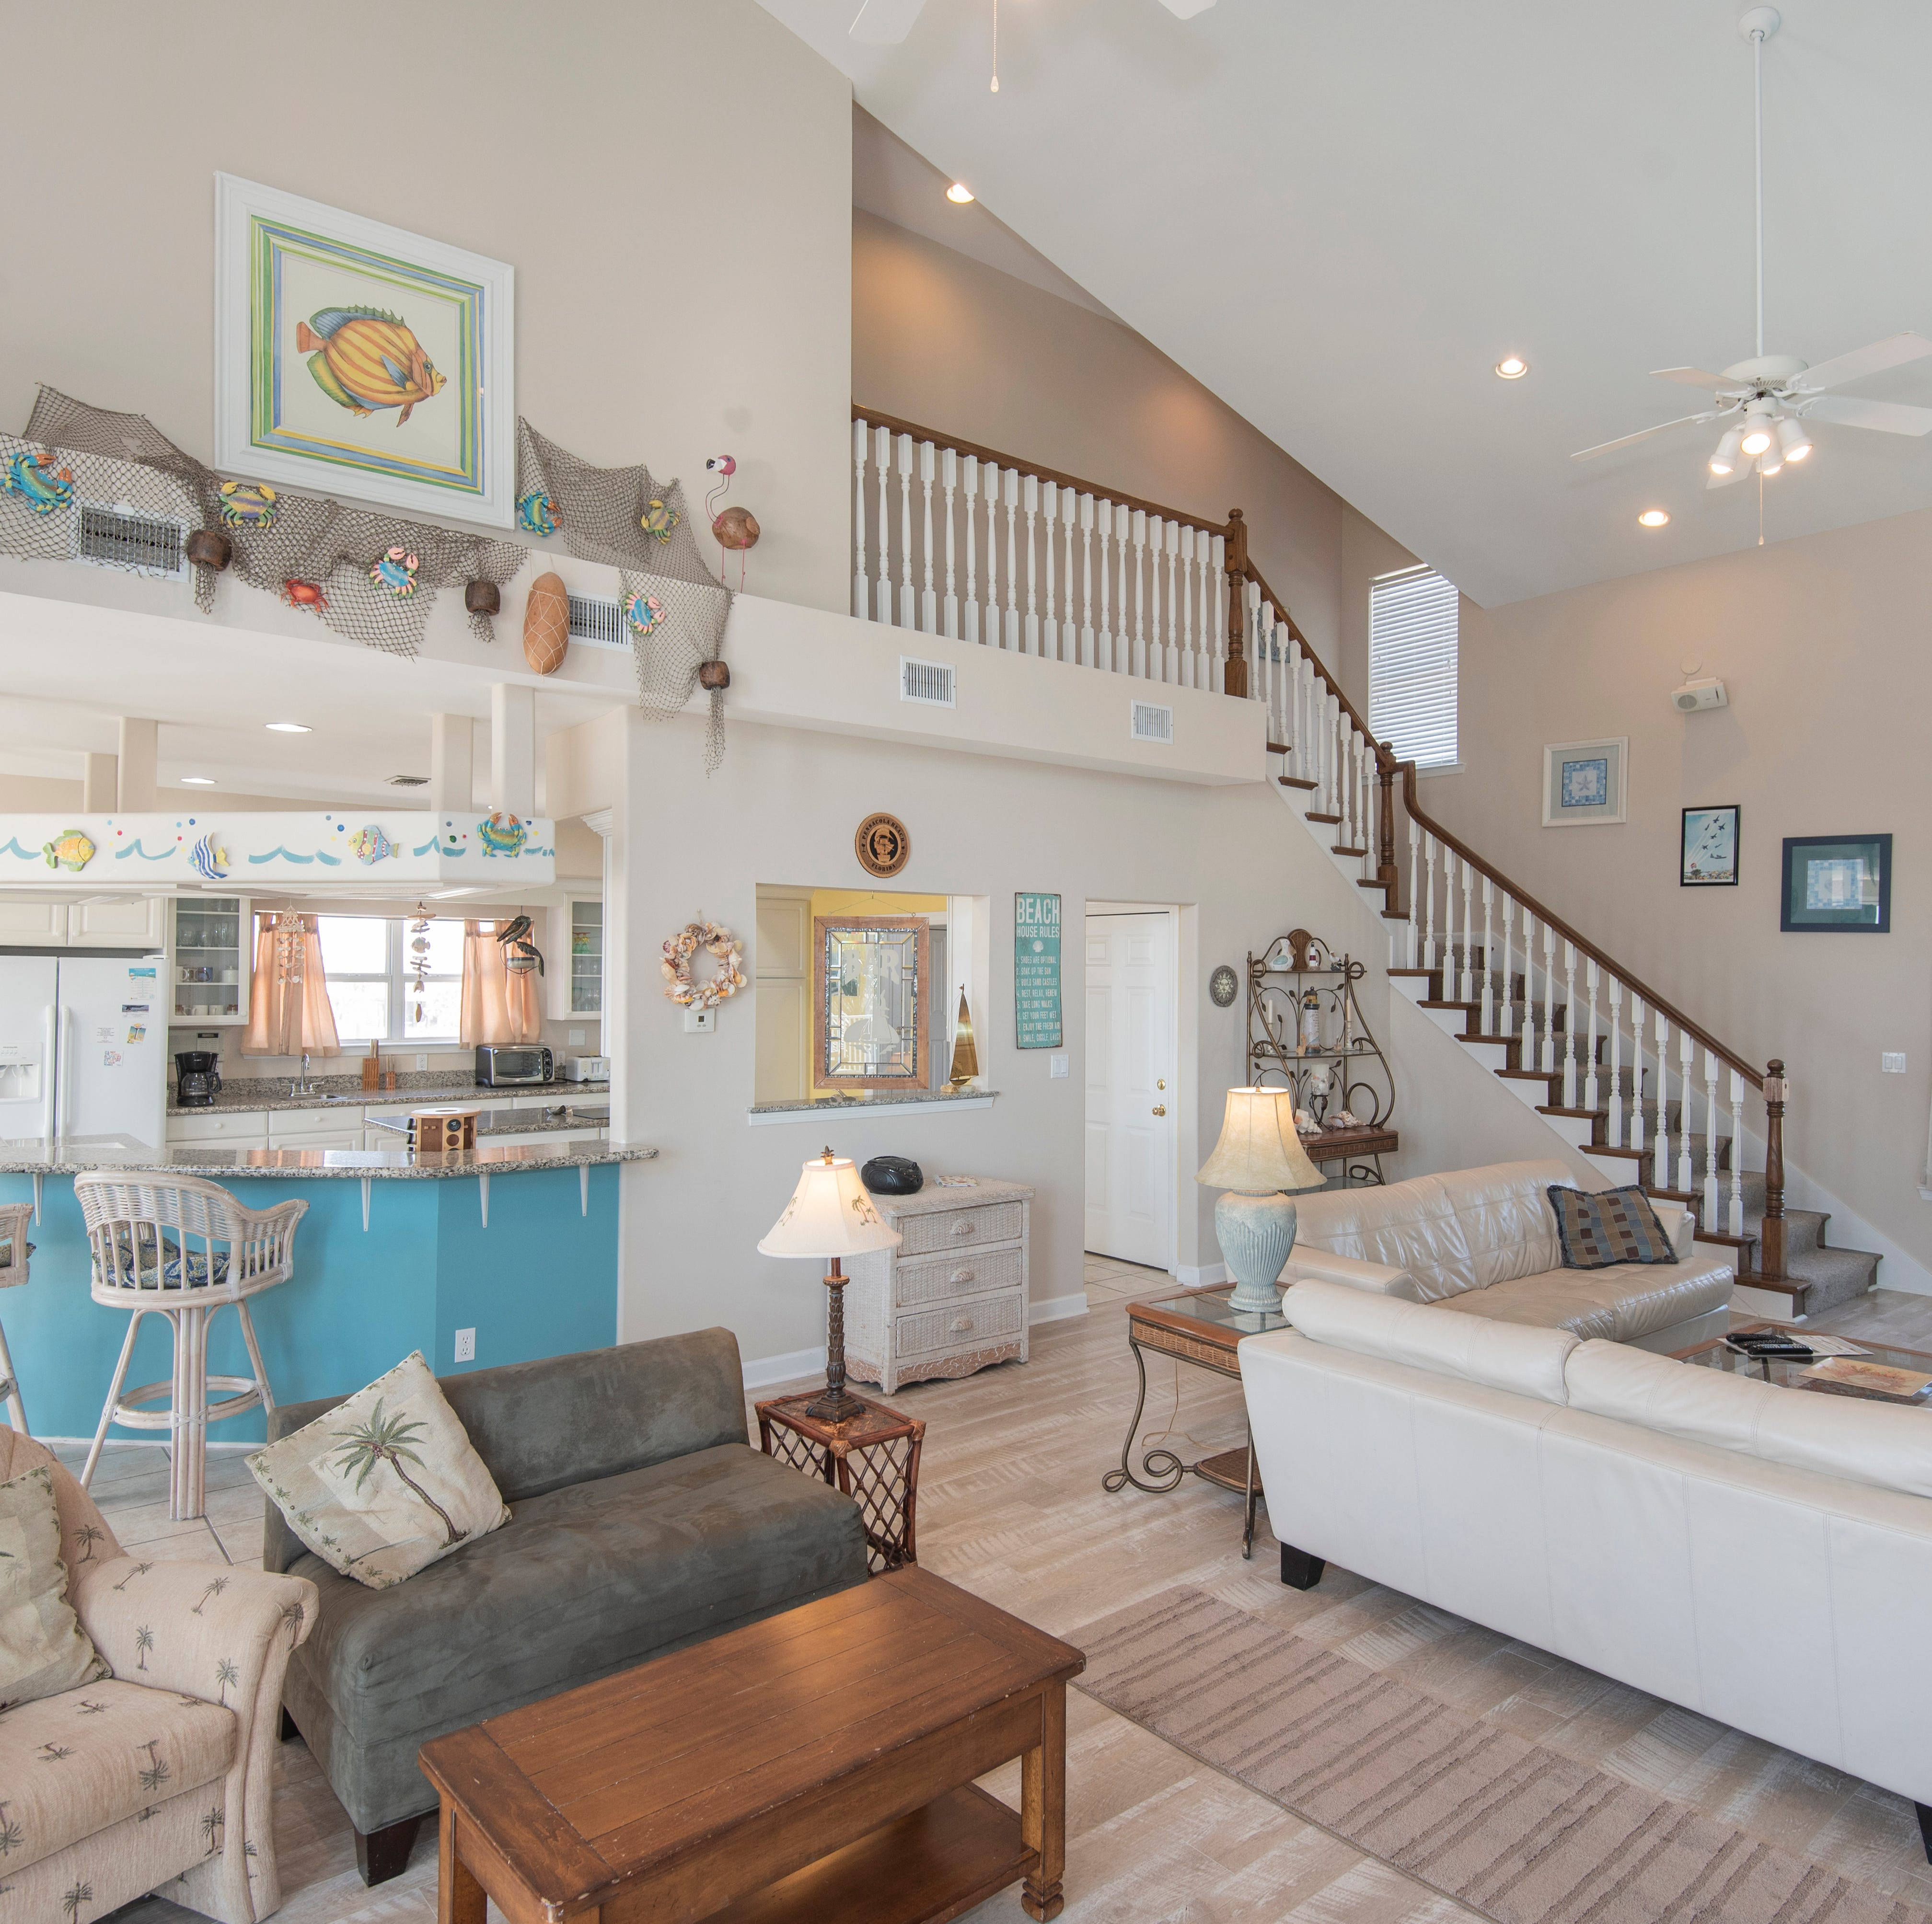 Hot property: 4,400-square-foot Pensacola Beach home offers breathtaking view